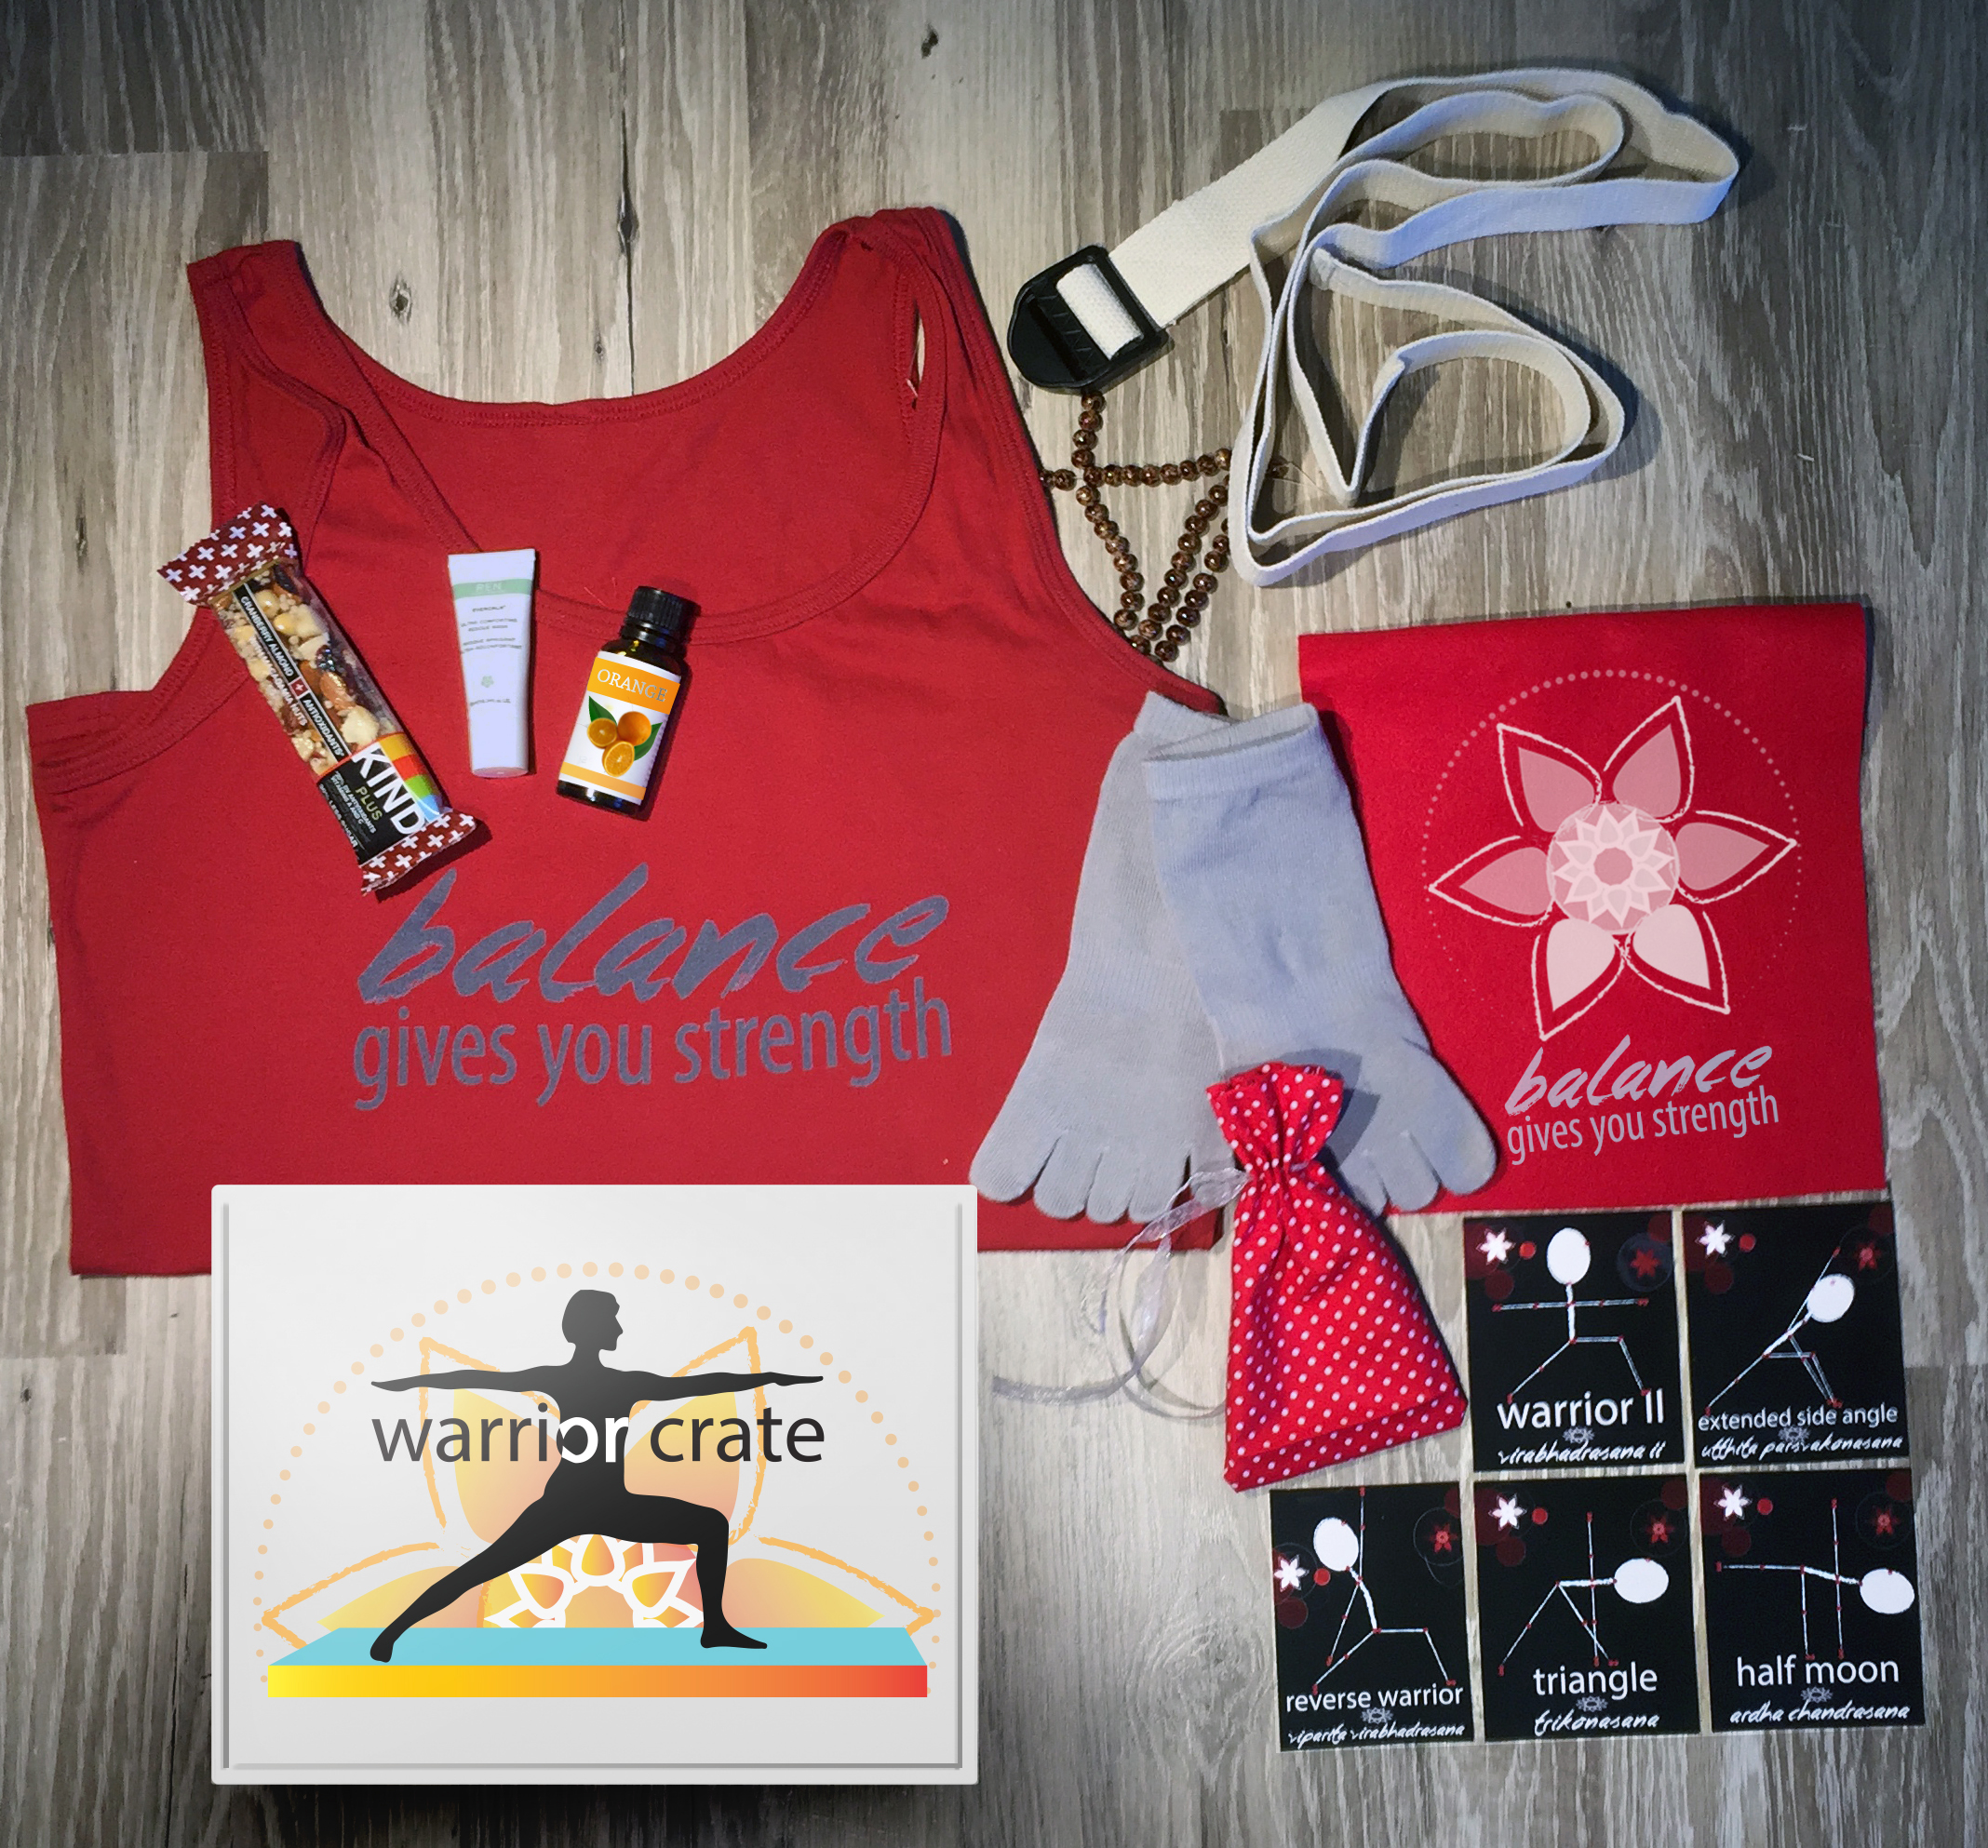 Why Yoga Warrior Crate?